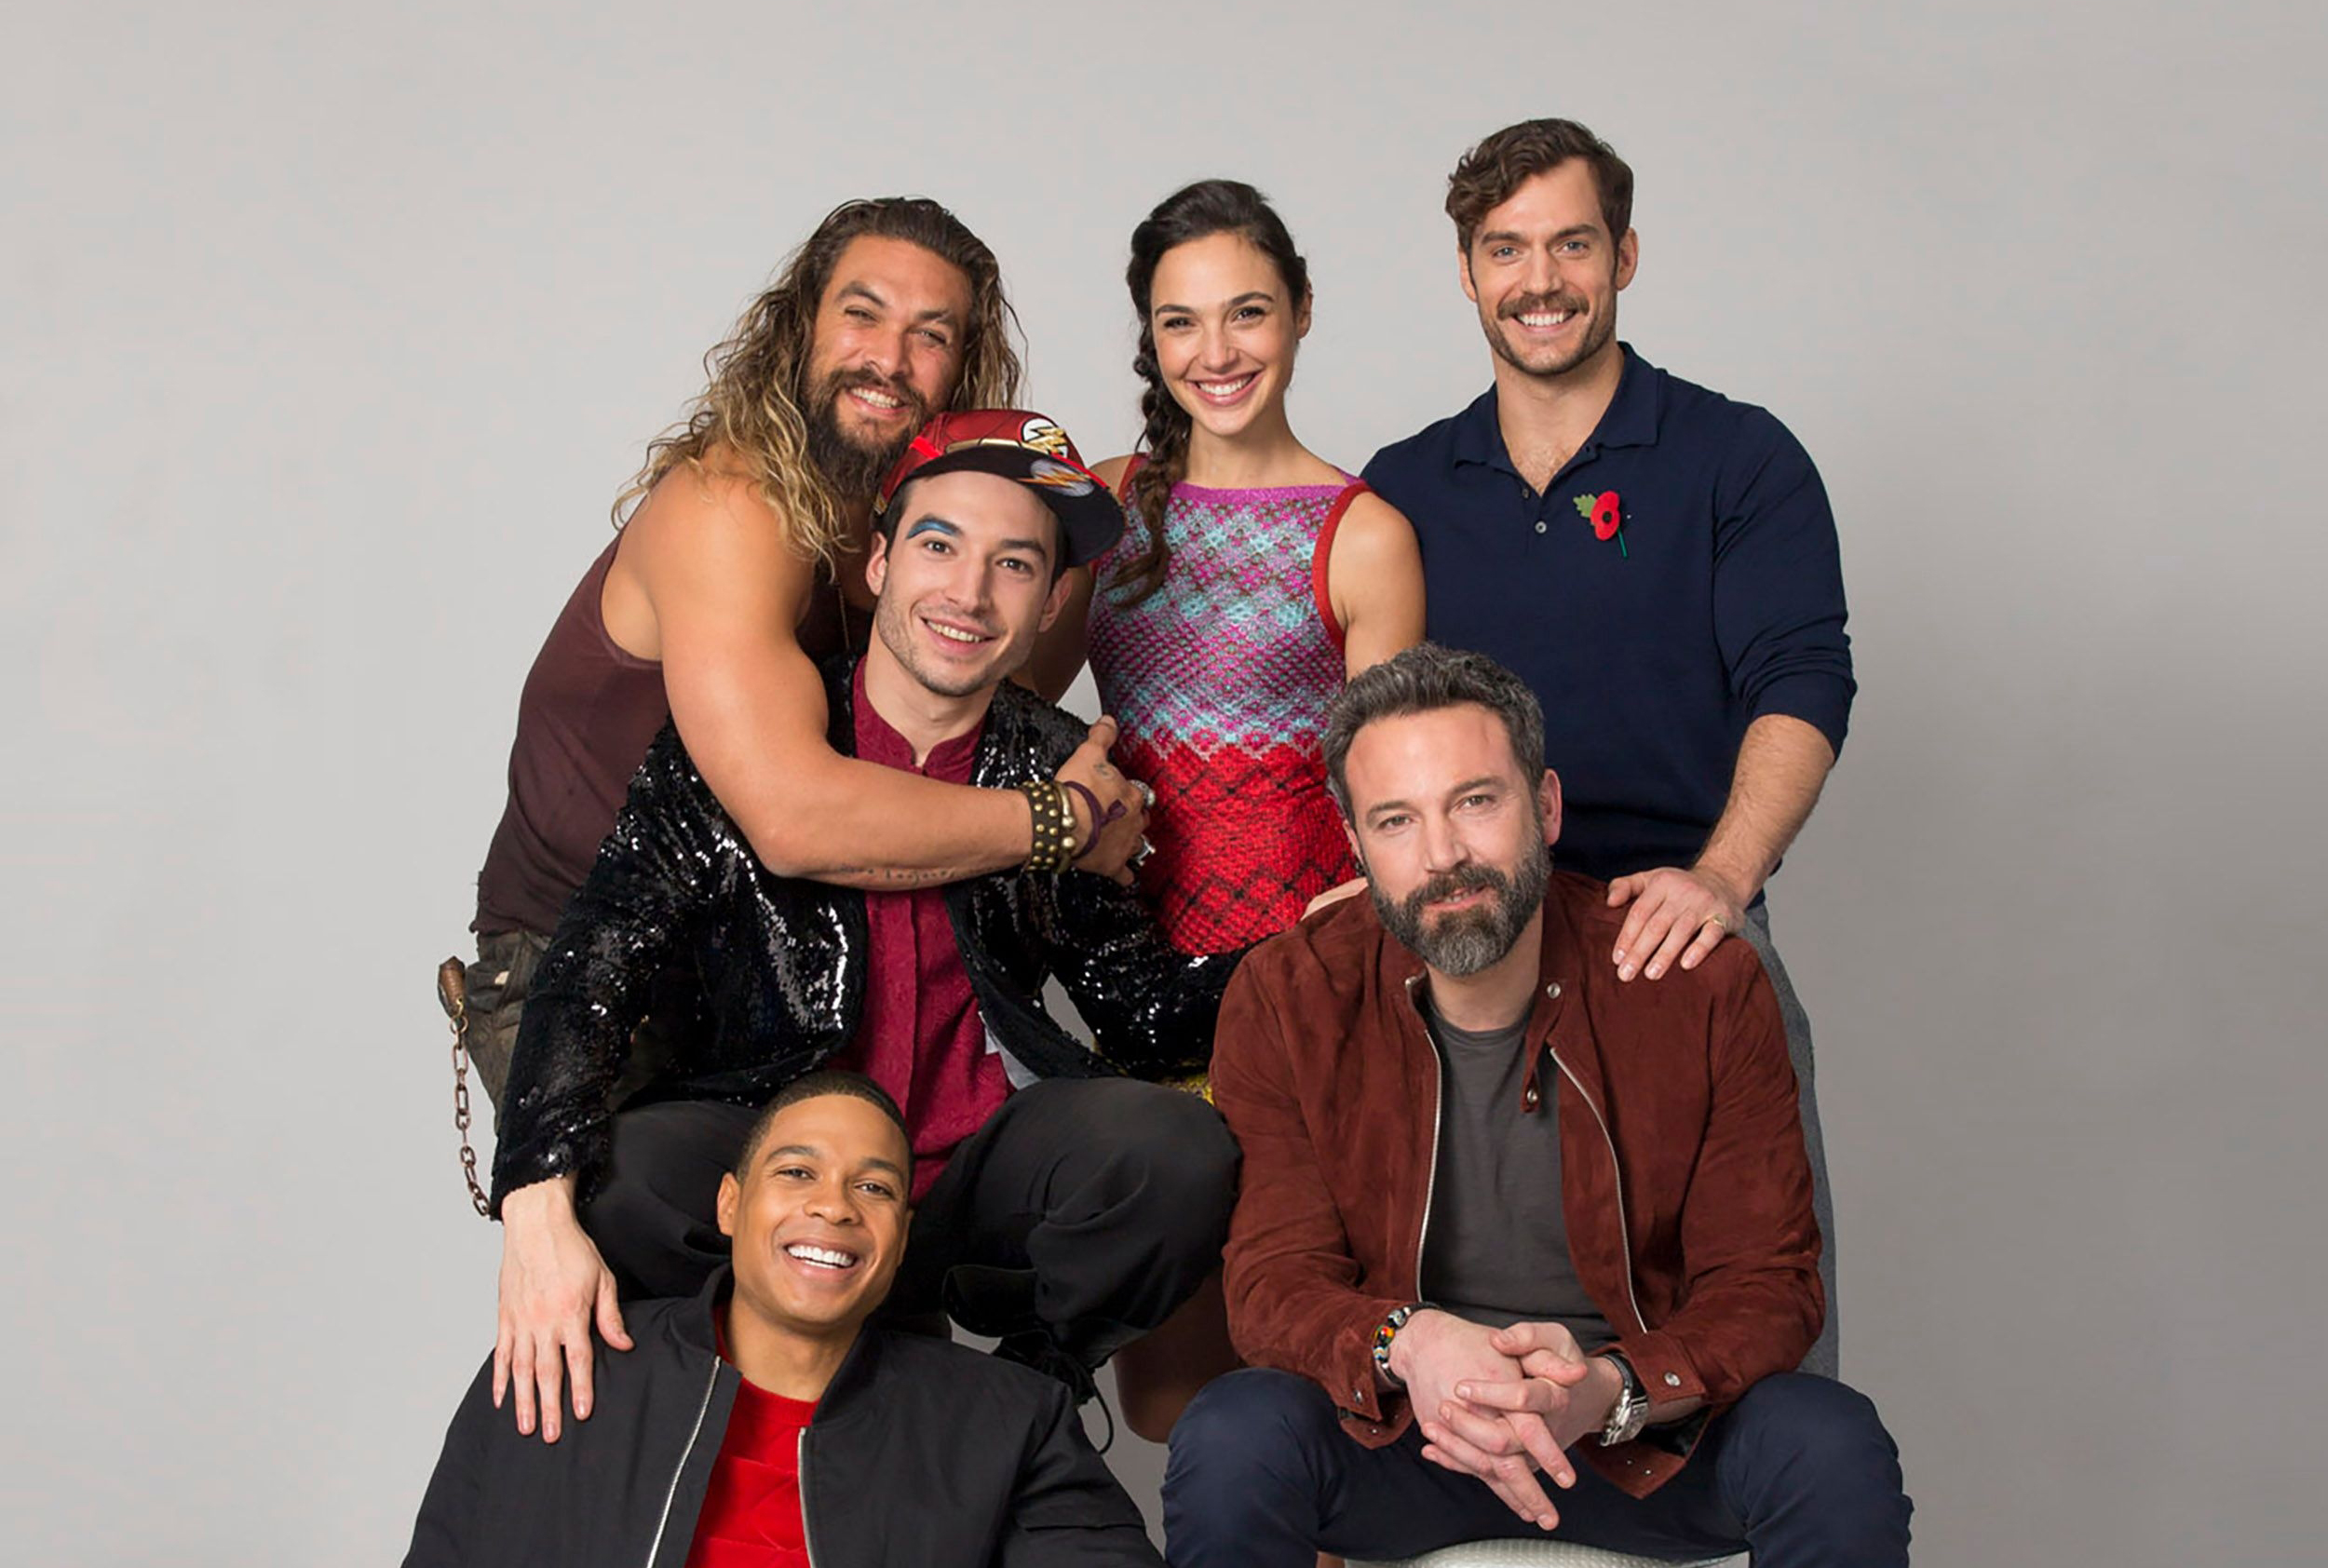 Justice League 2017 Cast Photoshoot Hd Movies 4k